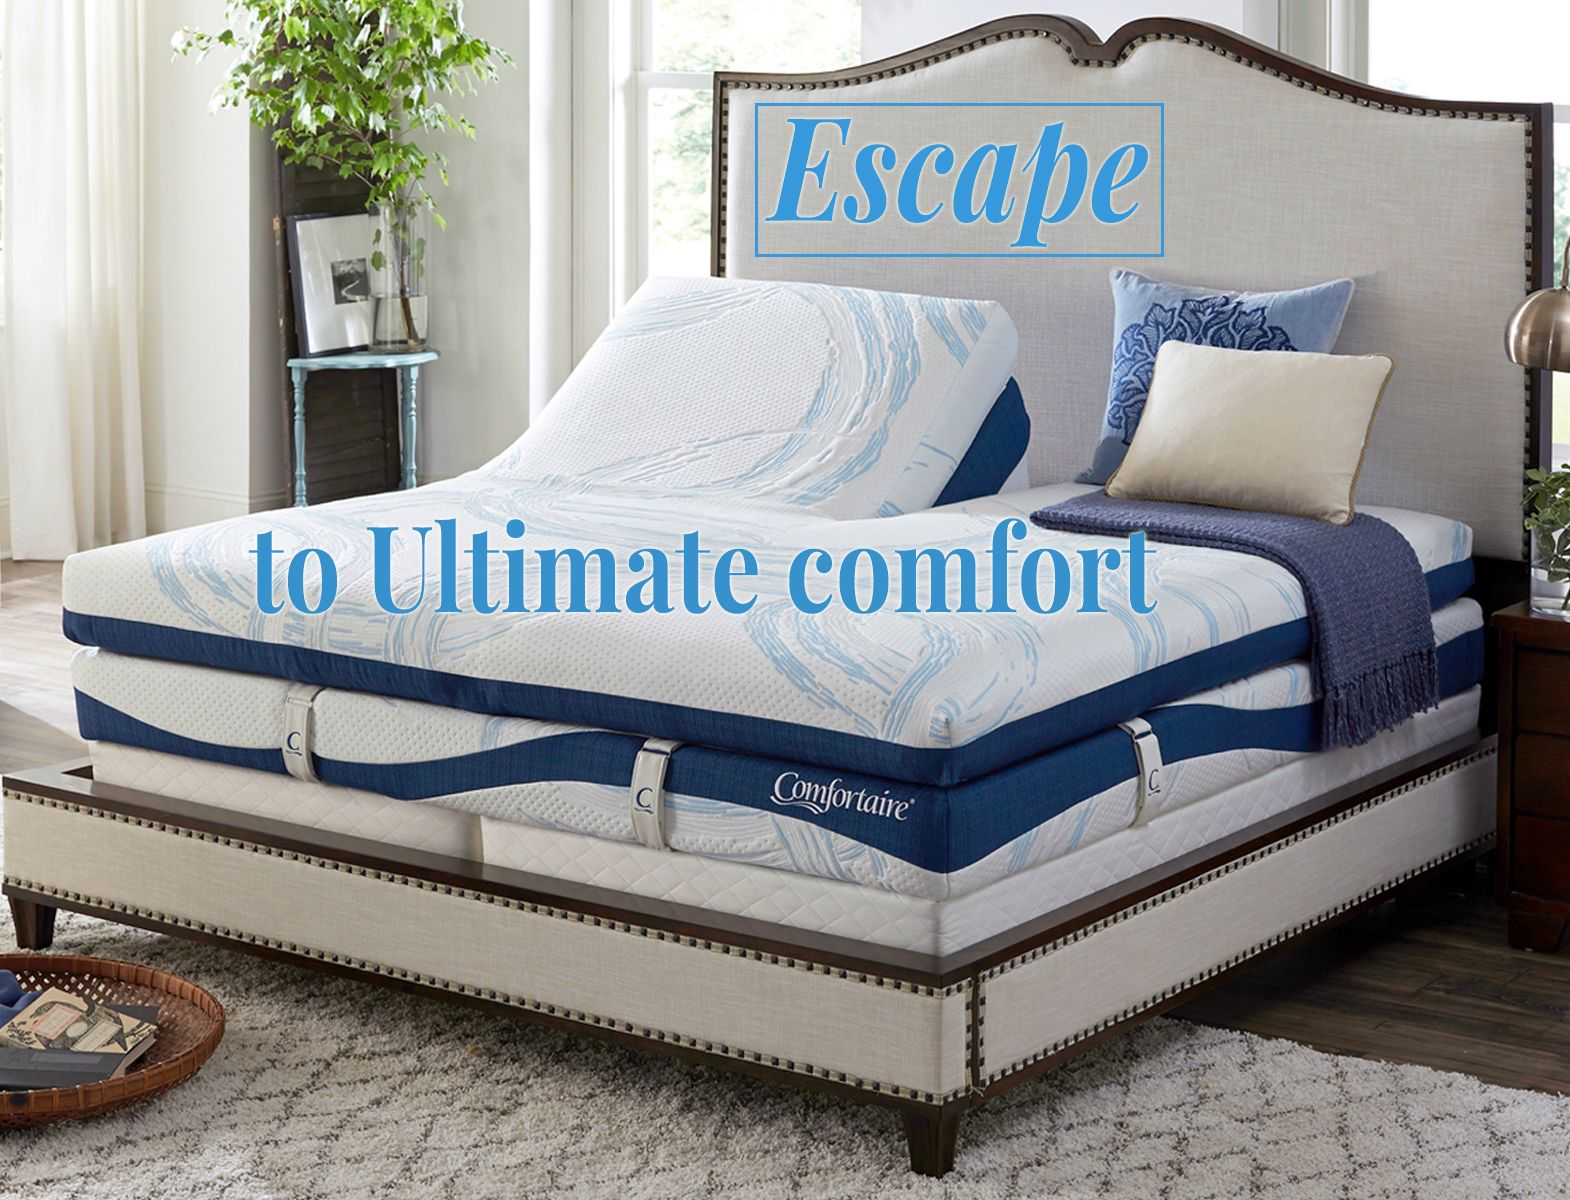 Our U15 is the Ultimate in sleep comfort Mattress